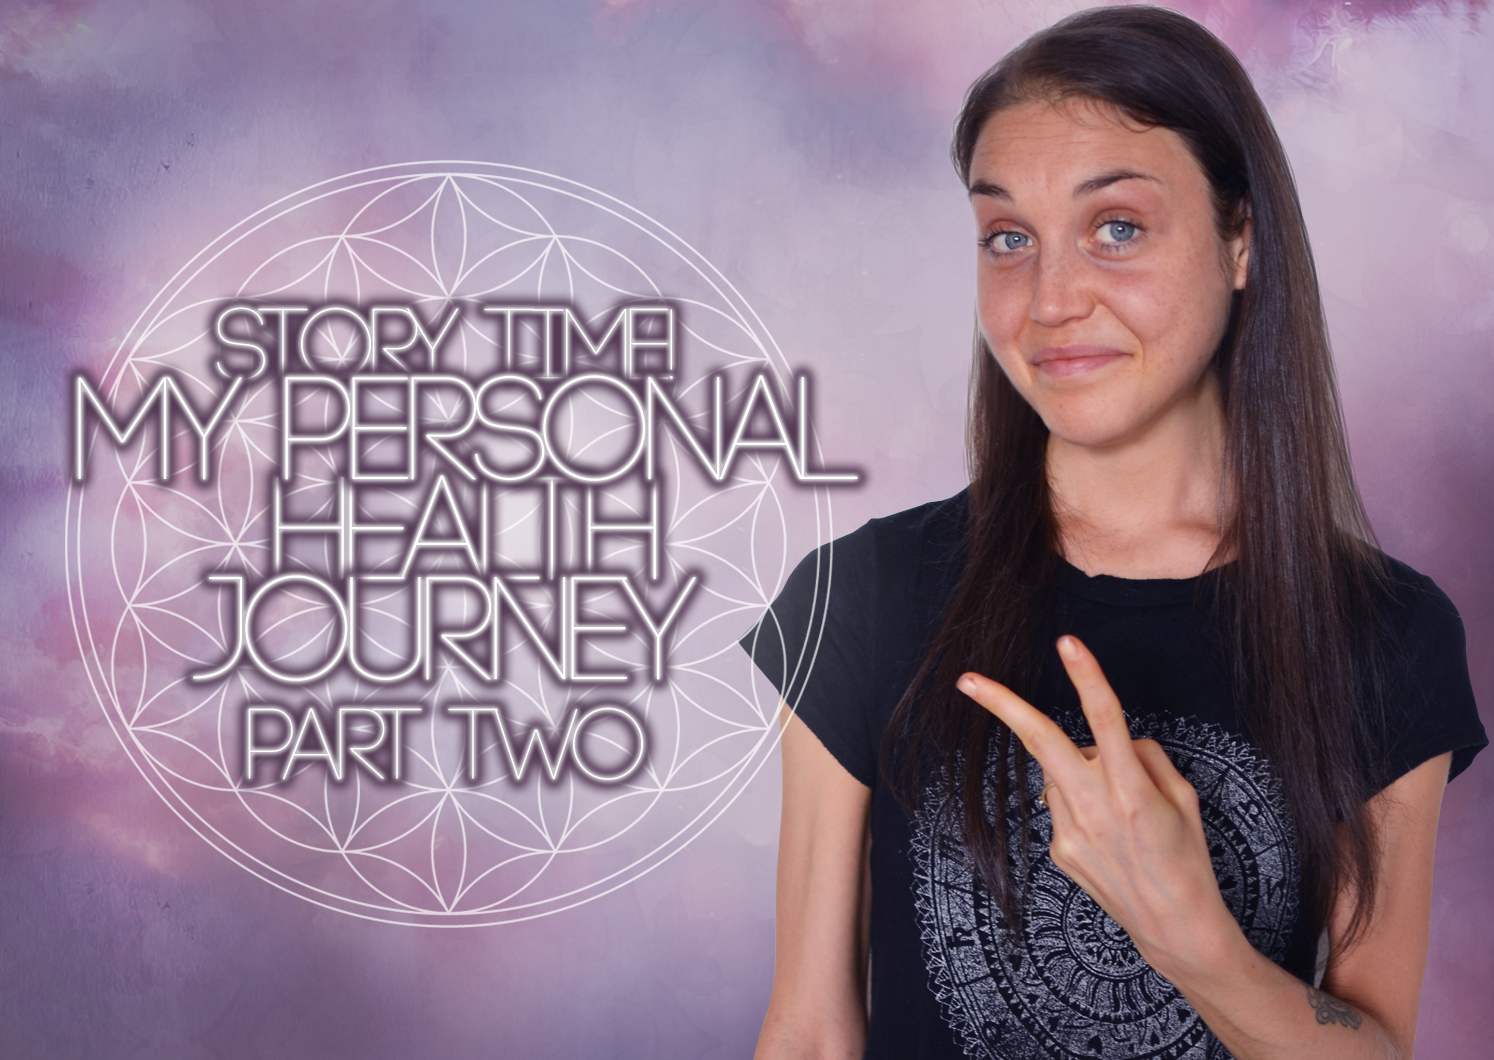 Story Time: My Health History: Part Two